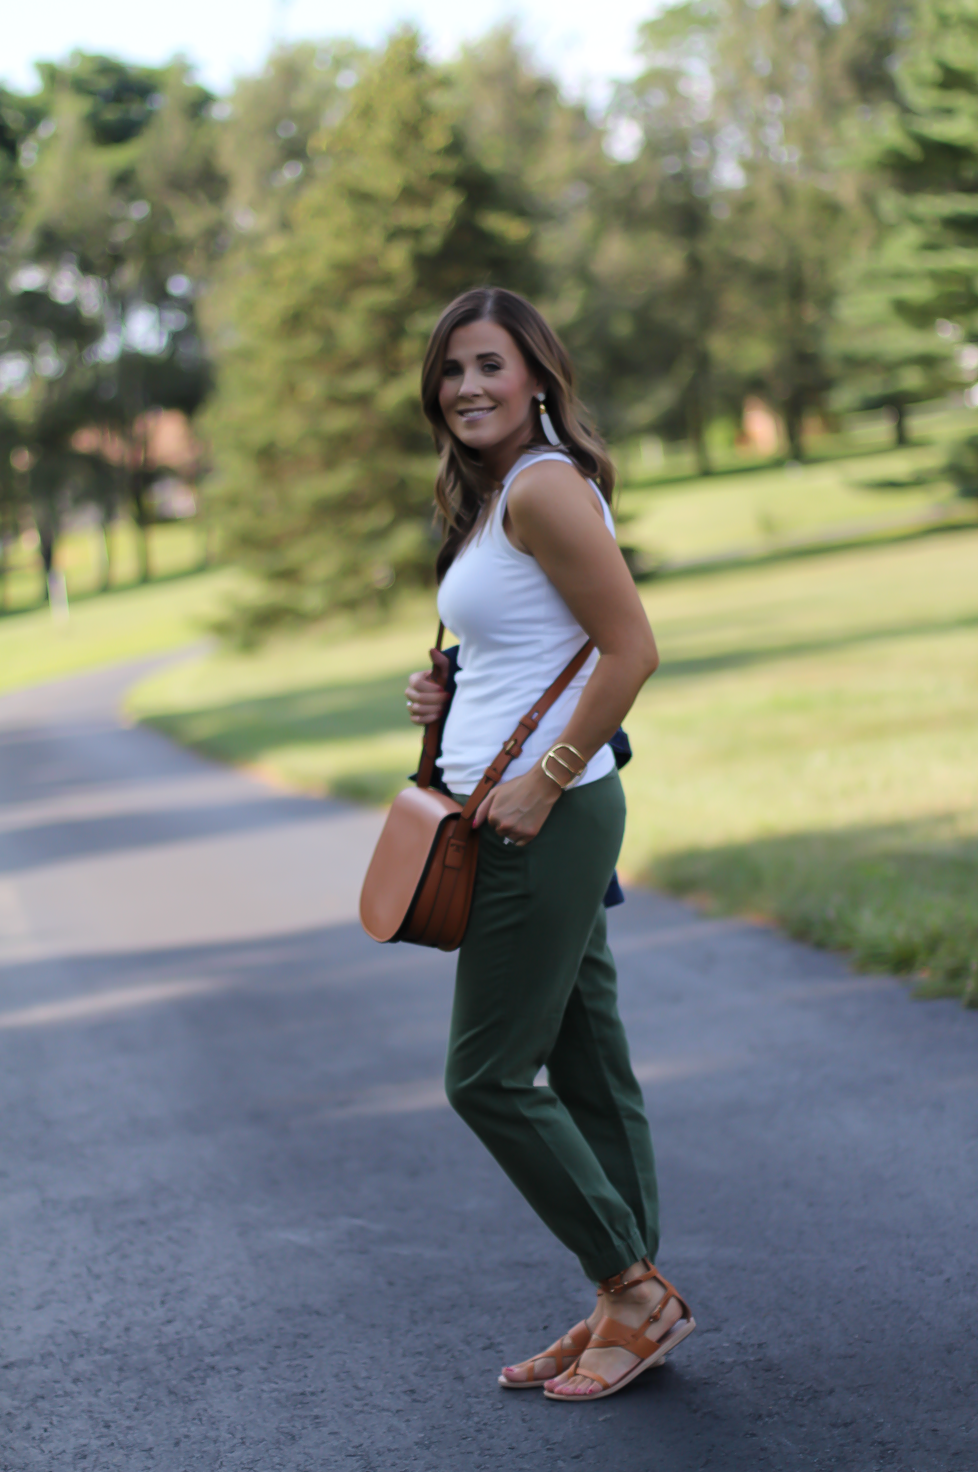 Army Green Joggers, White Sleeveless Shell Tee, Gladiator Sandals, Saddle Bag, J.Crew, tory Burch, Ancient Gladiator 9